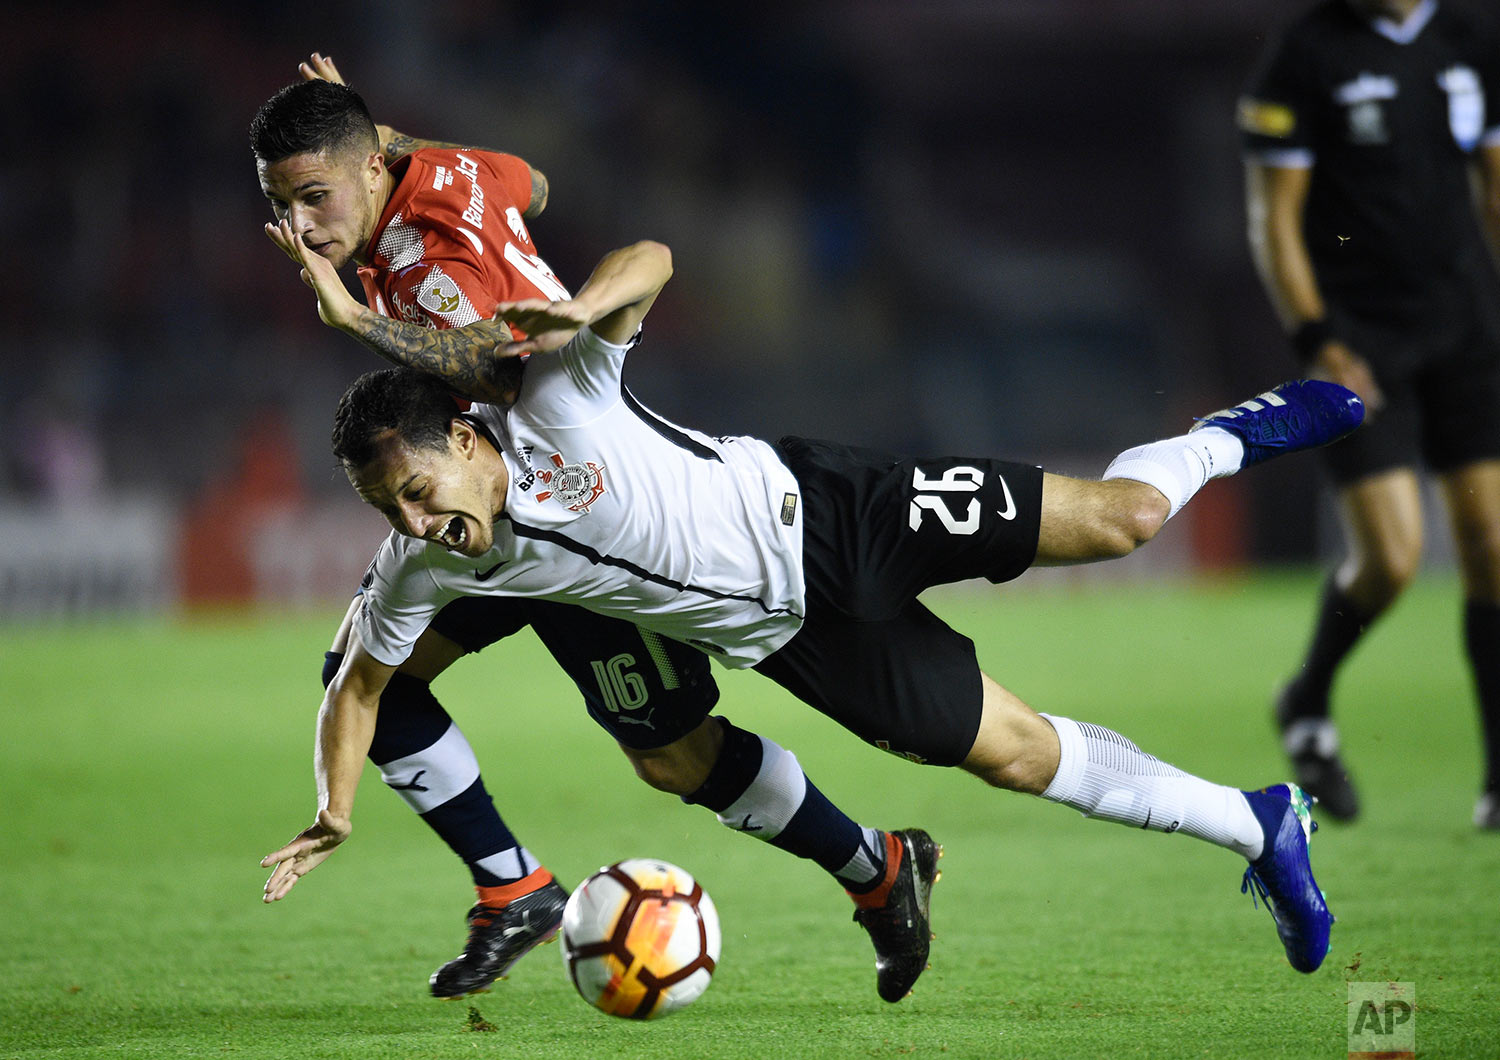 Rodriguinho of Brazil's Corinthians, front, fights for the ball with Fabricio Bustos of Argentina's Independiente, during a Copa Libertadores soccer match in Buenos Aires, Argentina, Wednesday, April 18, 2018. (AP Photo/Gustavo Garello)